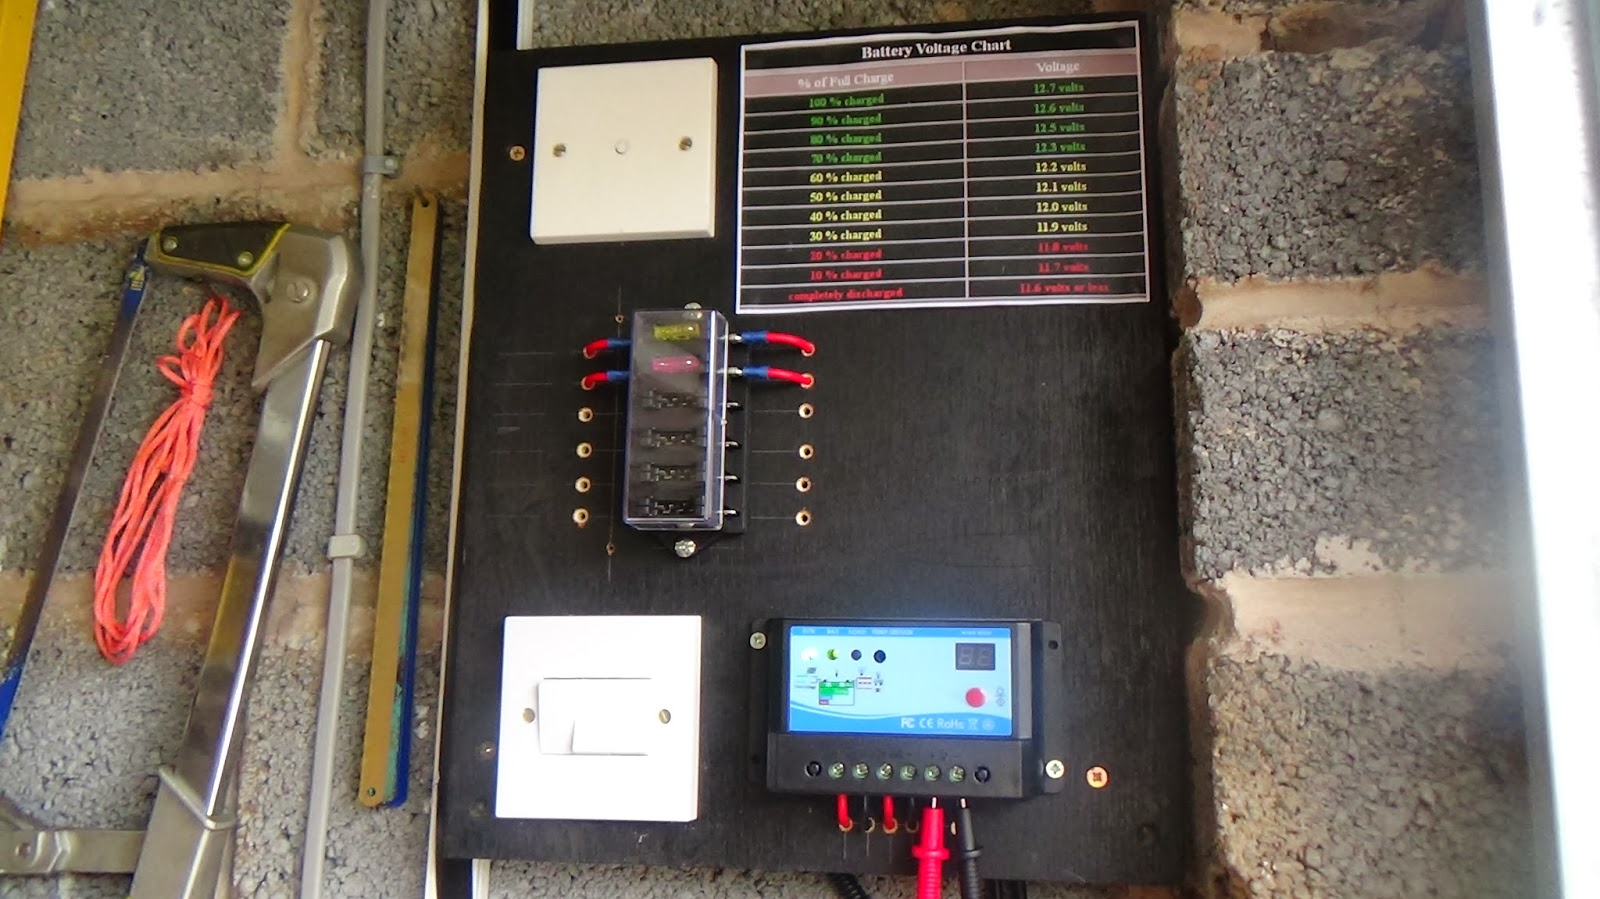 Diy Home Solar Power Projects How I Built My First Simple By Electronic Electrical Be Powerful Enough To Completely Run The Garages Electricity Requirements This Is Simply Me Learning About Components Involved